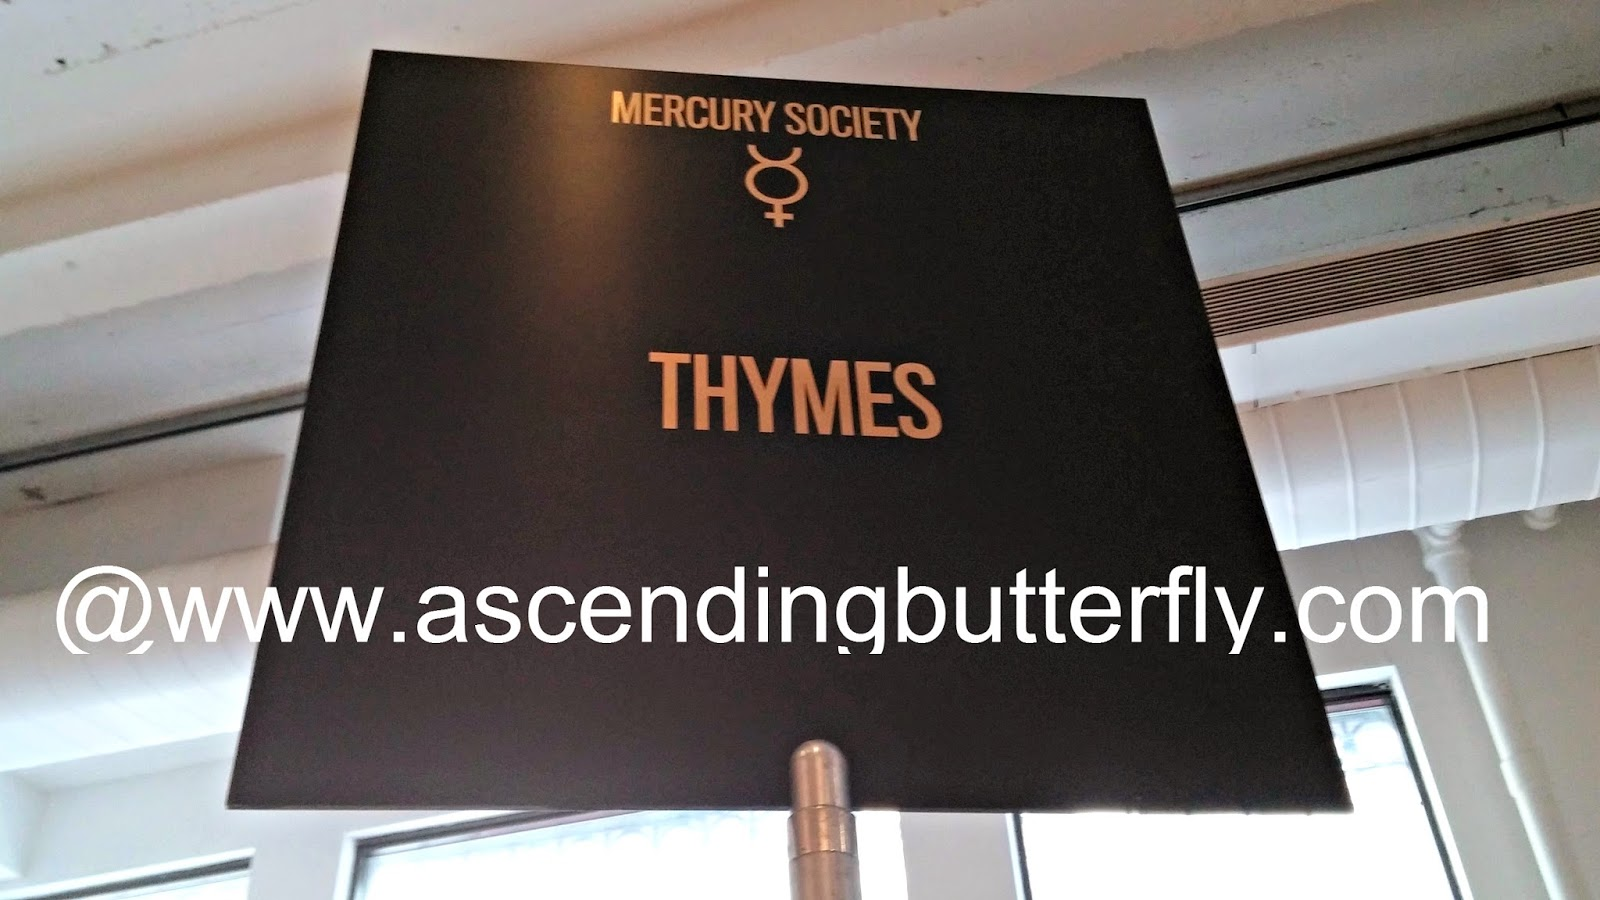 Thymes Natural-Smelling Fragrances